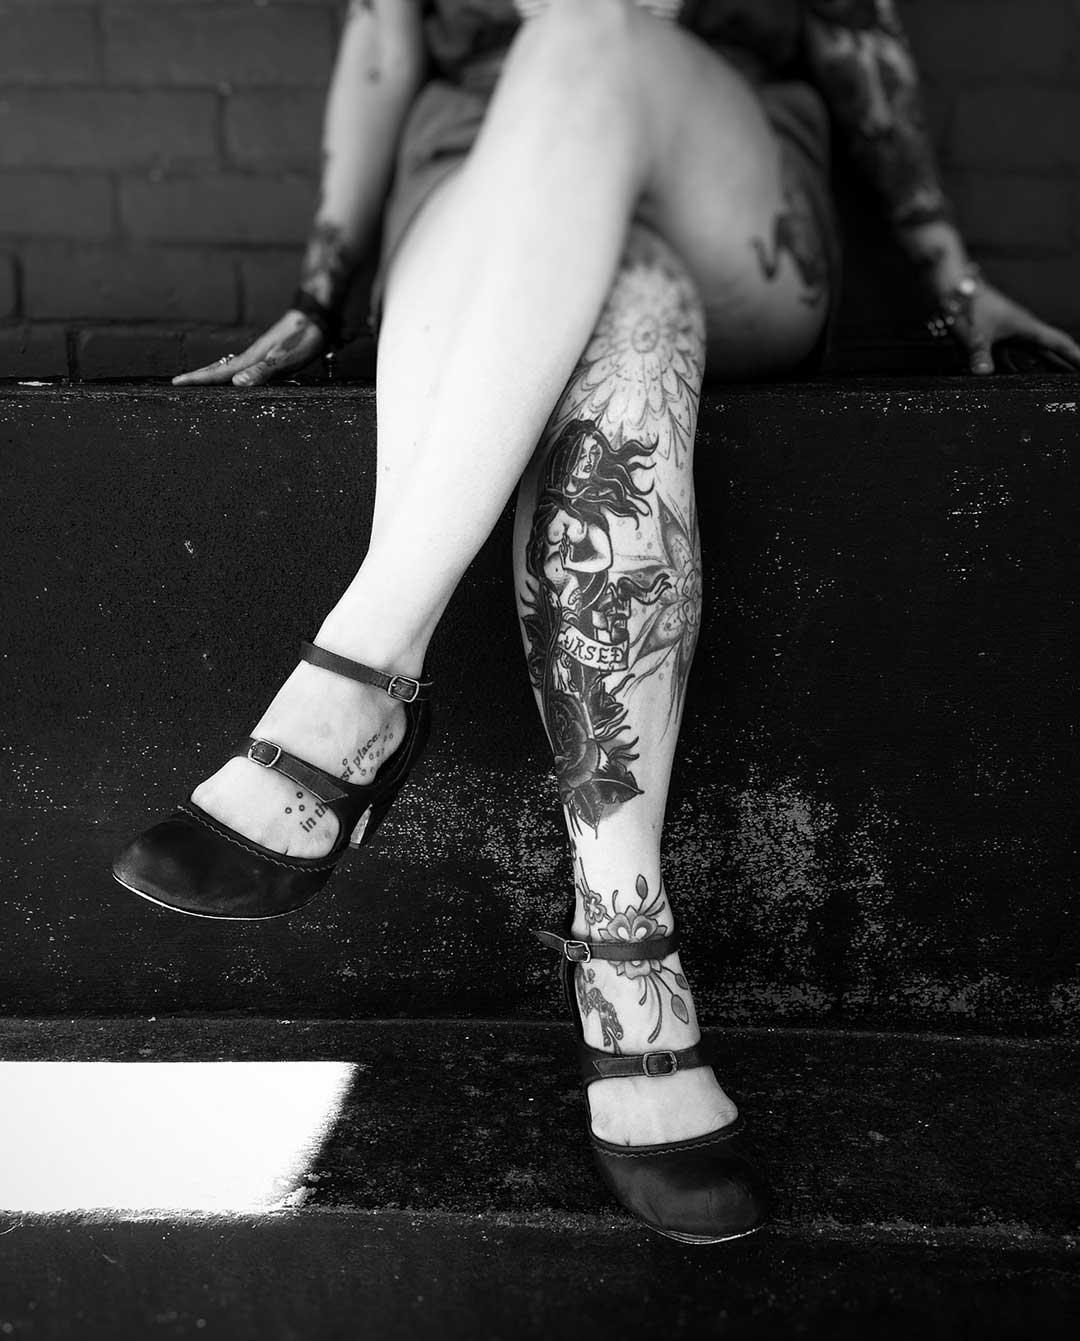 Old School Tattoo de chicas de Pin-ups